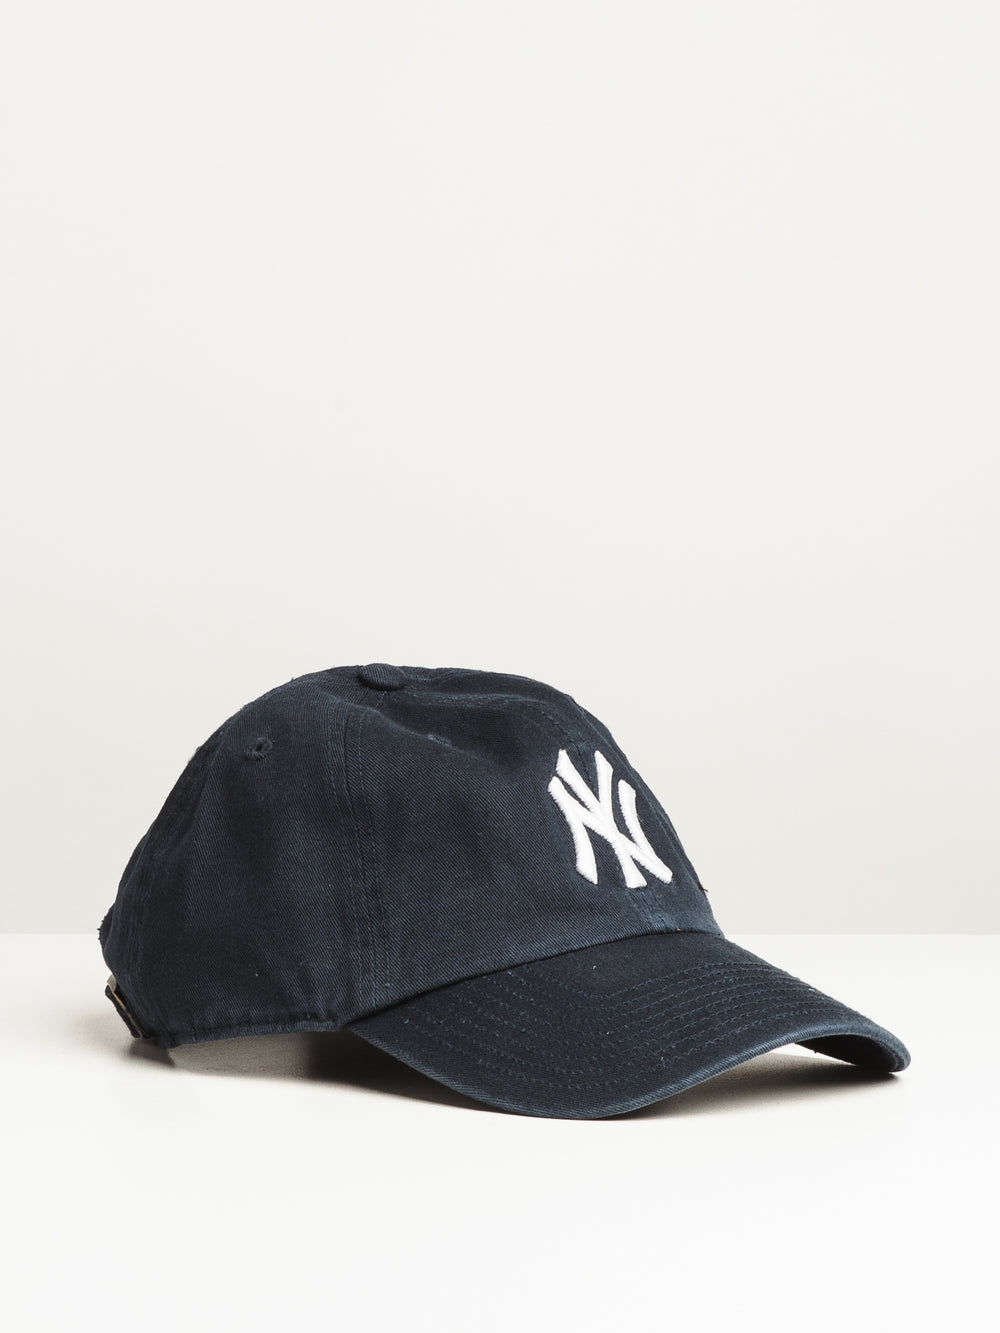 MLB CU HAT - NEW YORK YANKEES